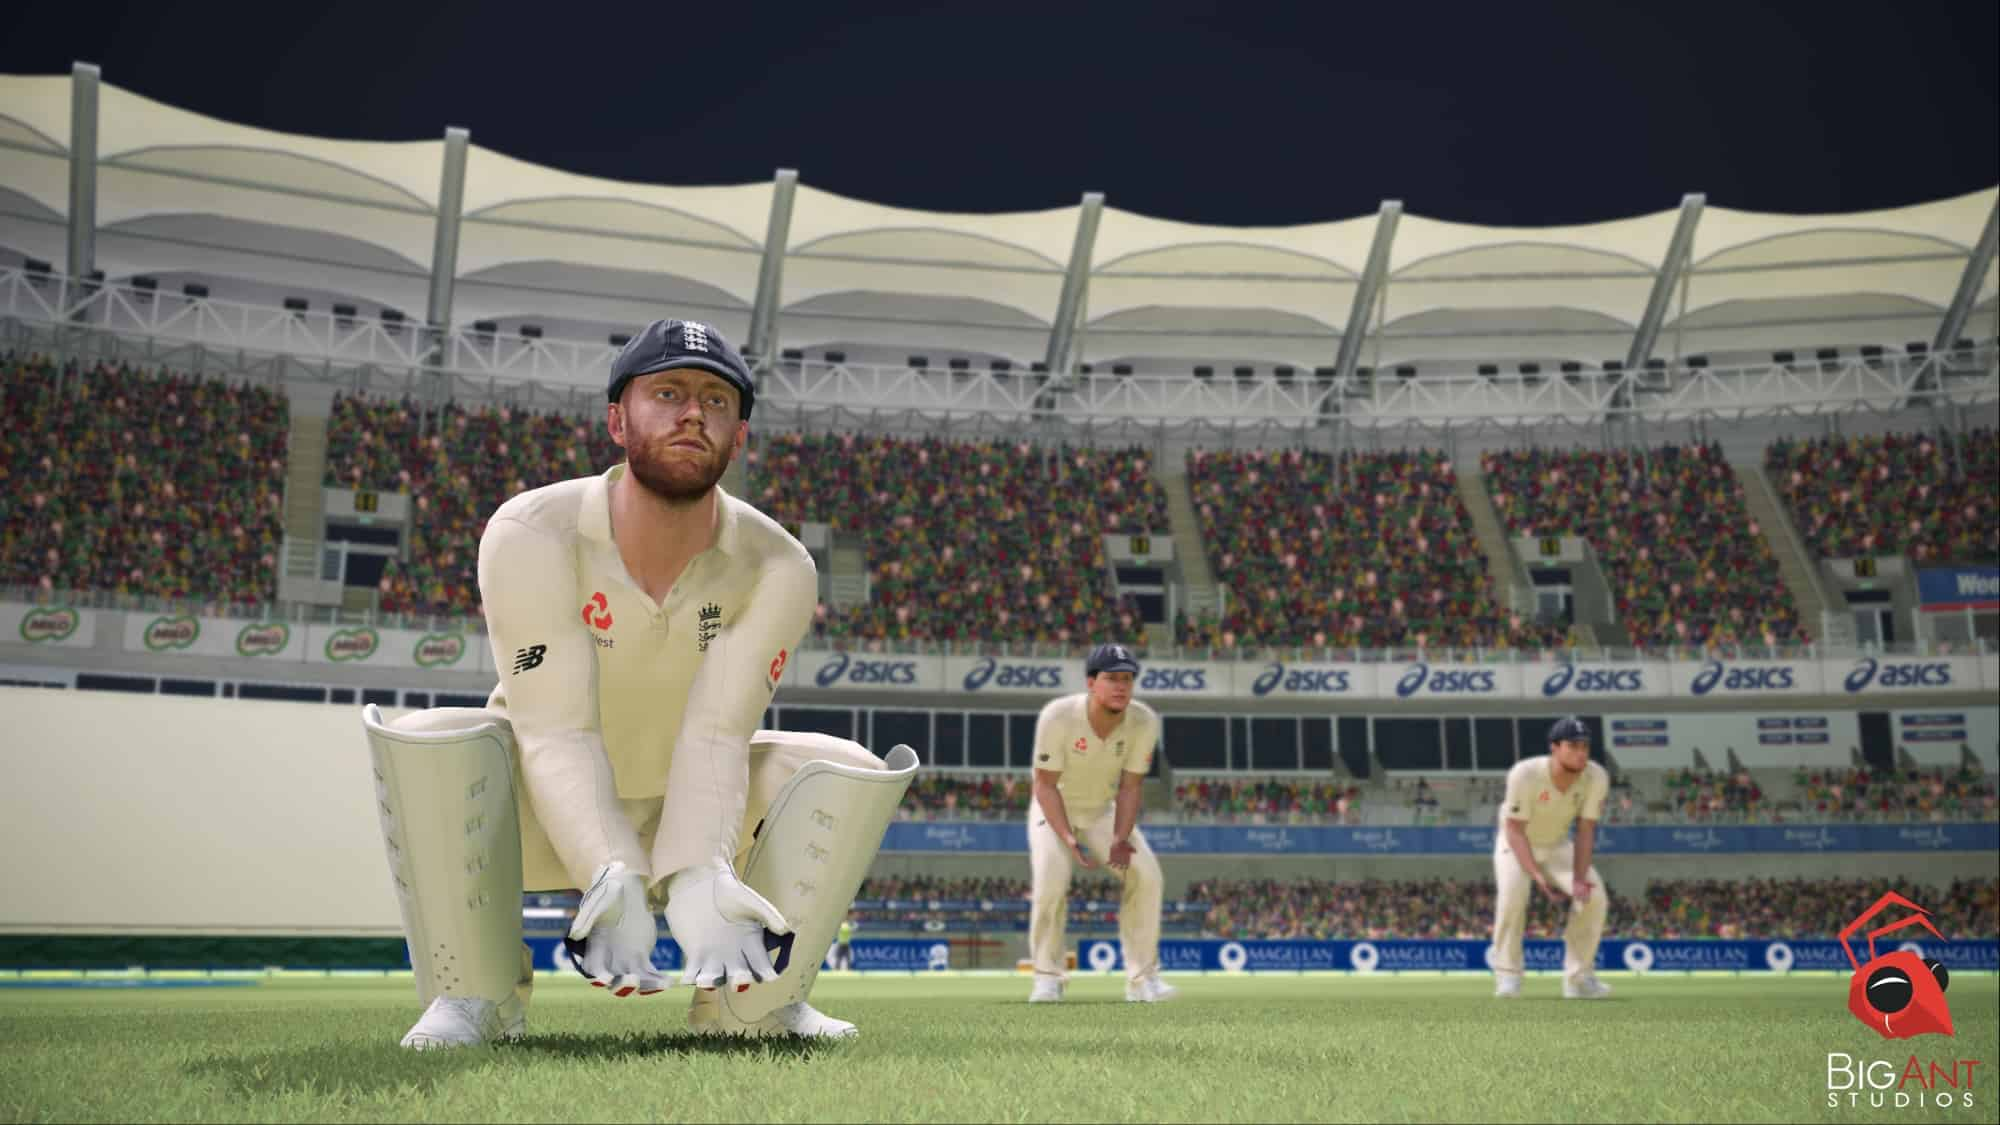 Ashes Cricket PC Game Full Version Free Download - The …